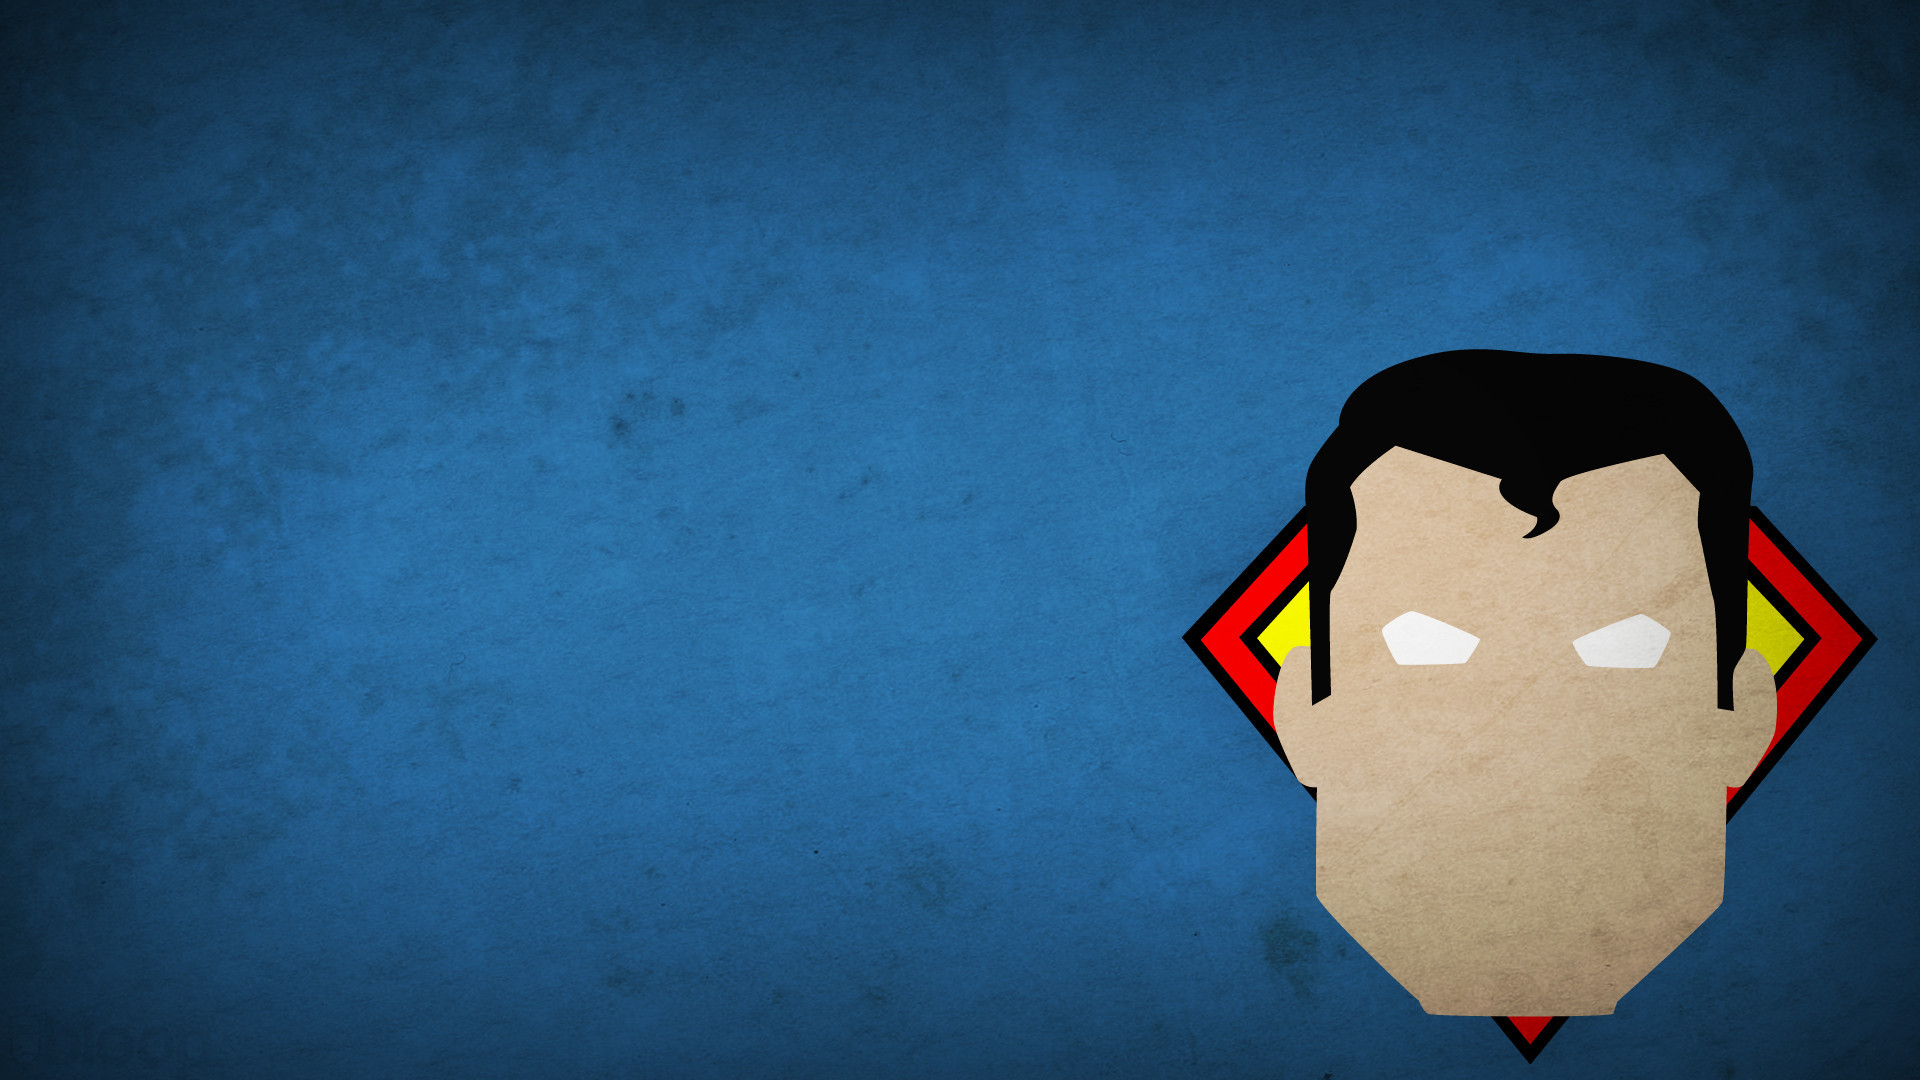 1920x1080 Minimalist Superhero Wallpapers!